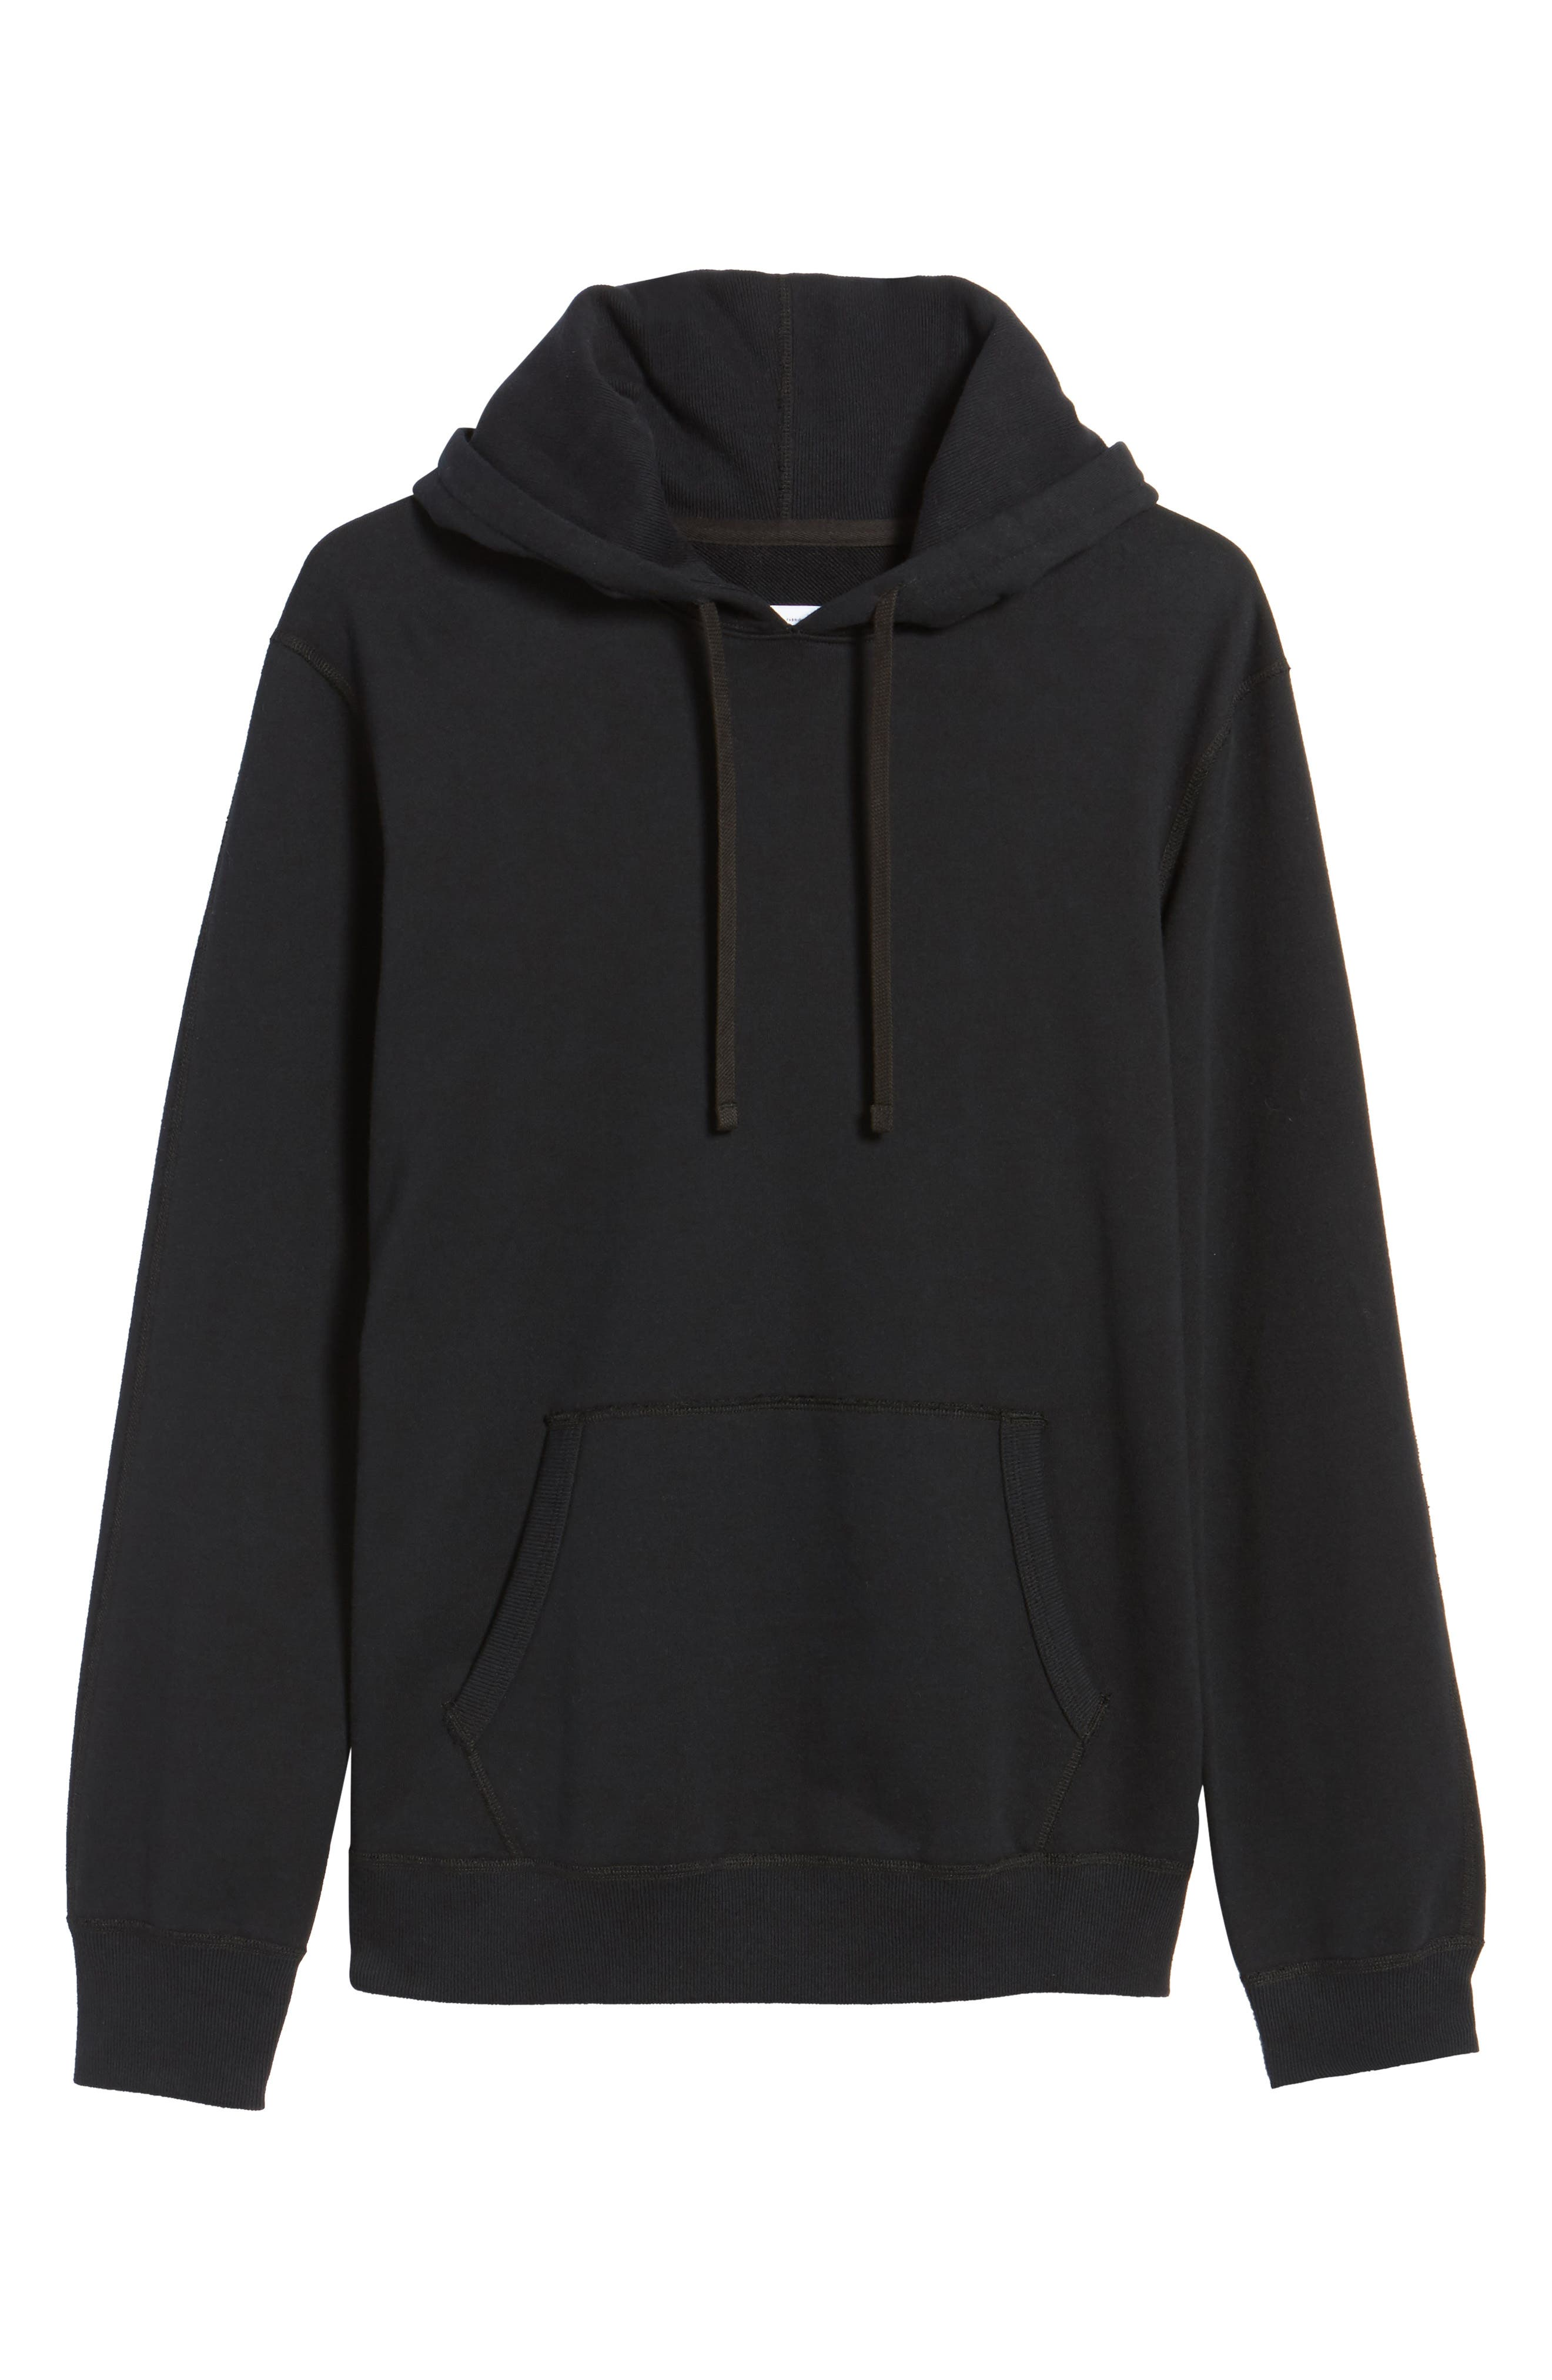 REIGNING CHAMP,                             French Terry Hoodie,                             Alternate thumbnail 6, color,                             001